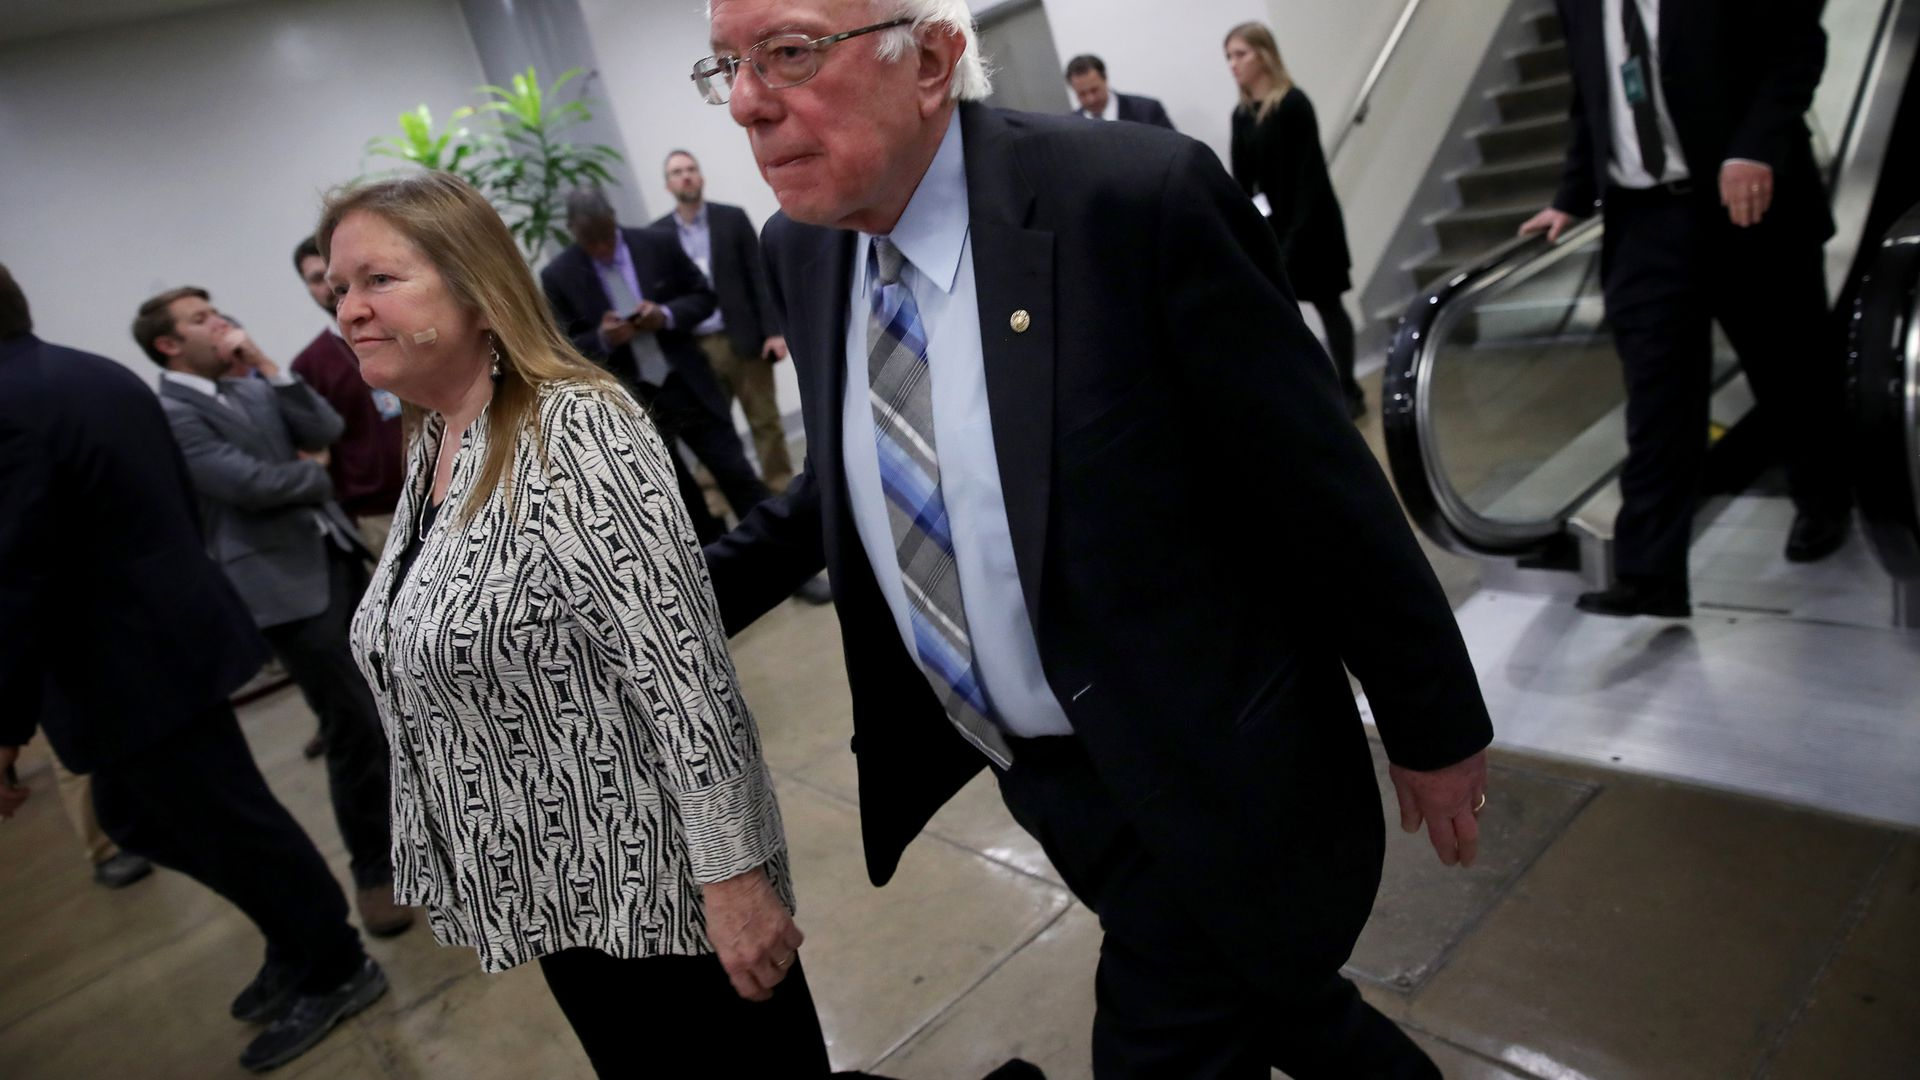 Sanders' nonprofit suspends operations amid scrutiny for lack of transparency